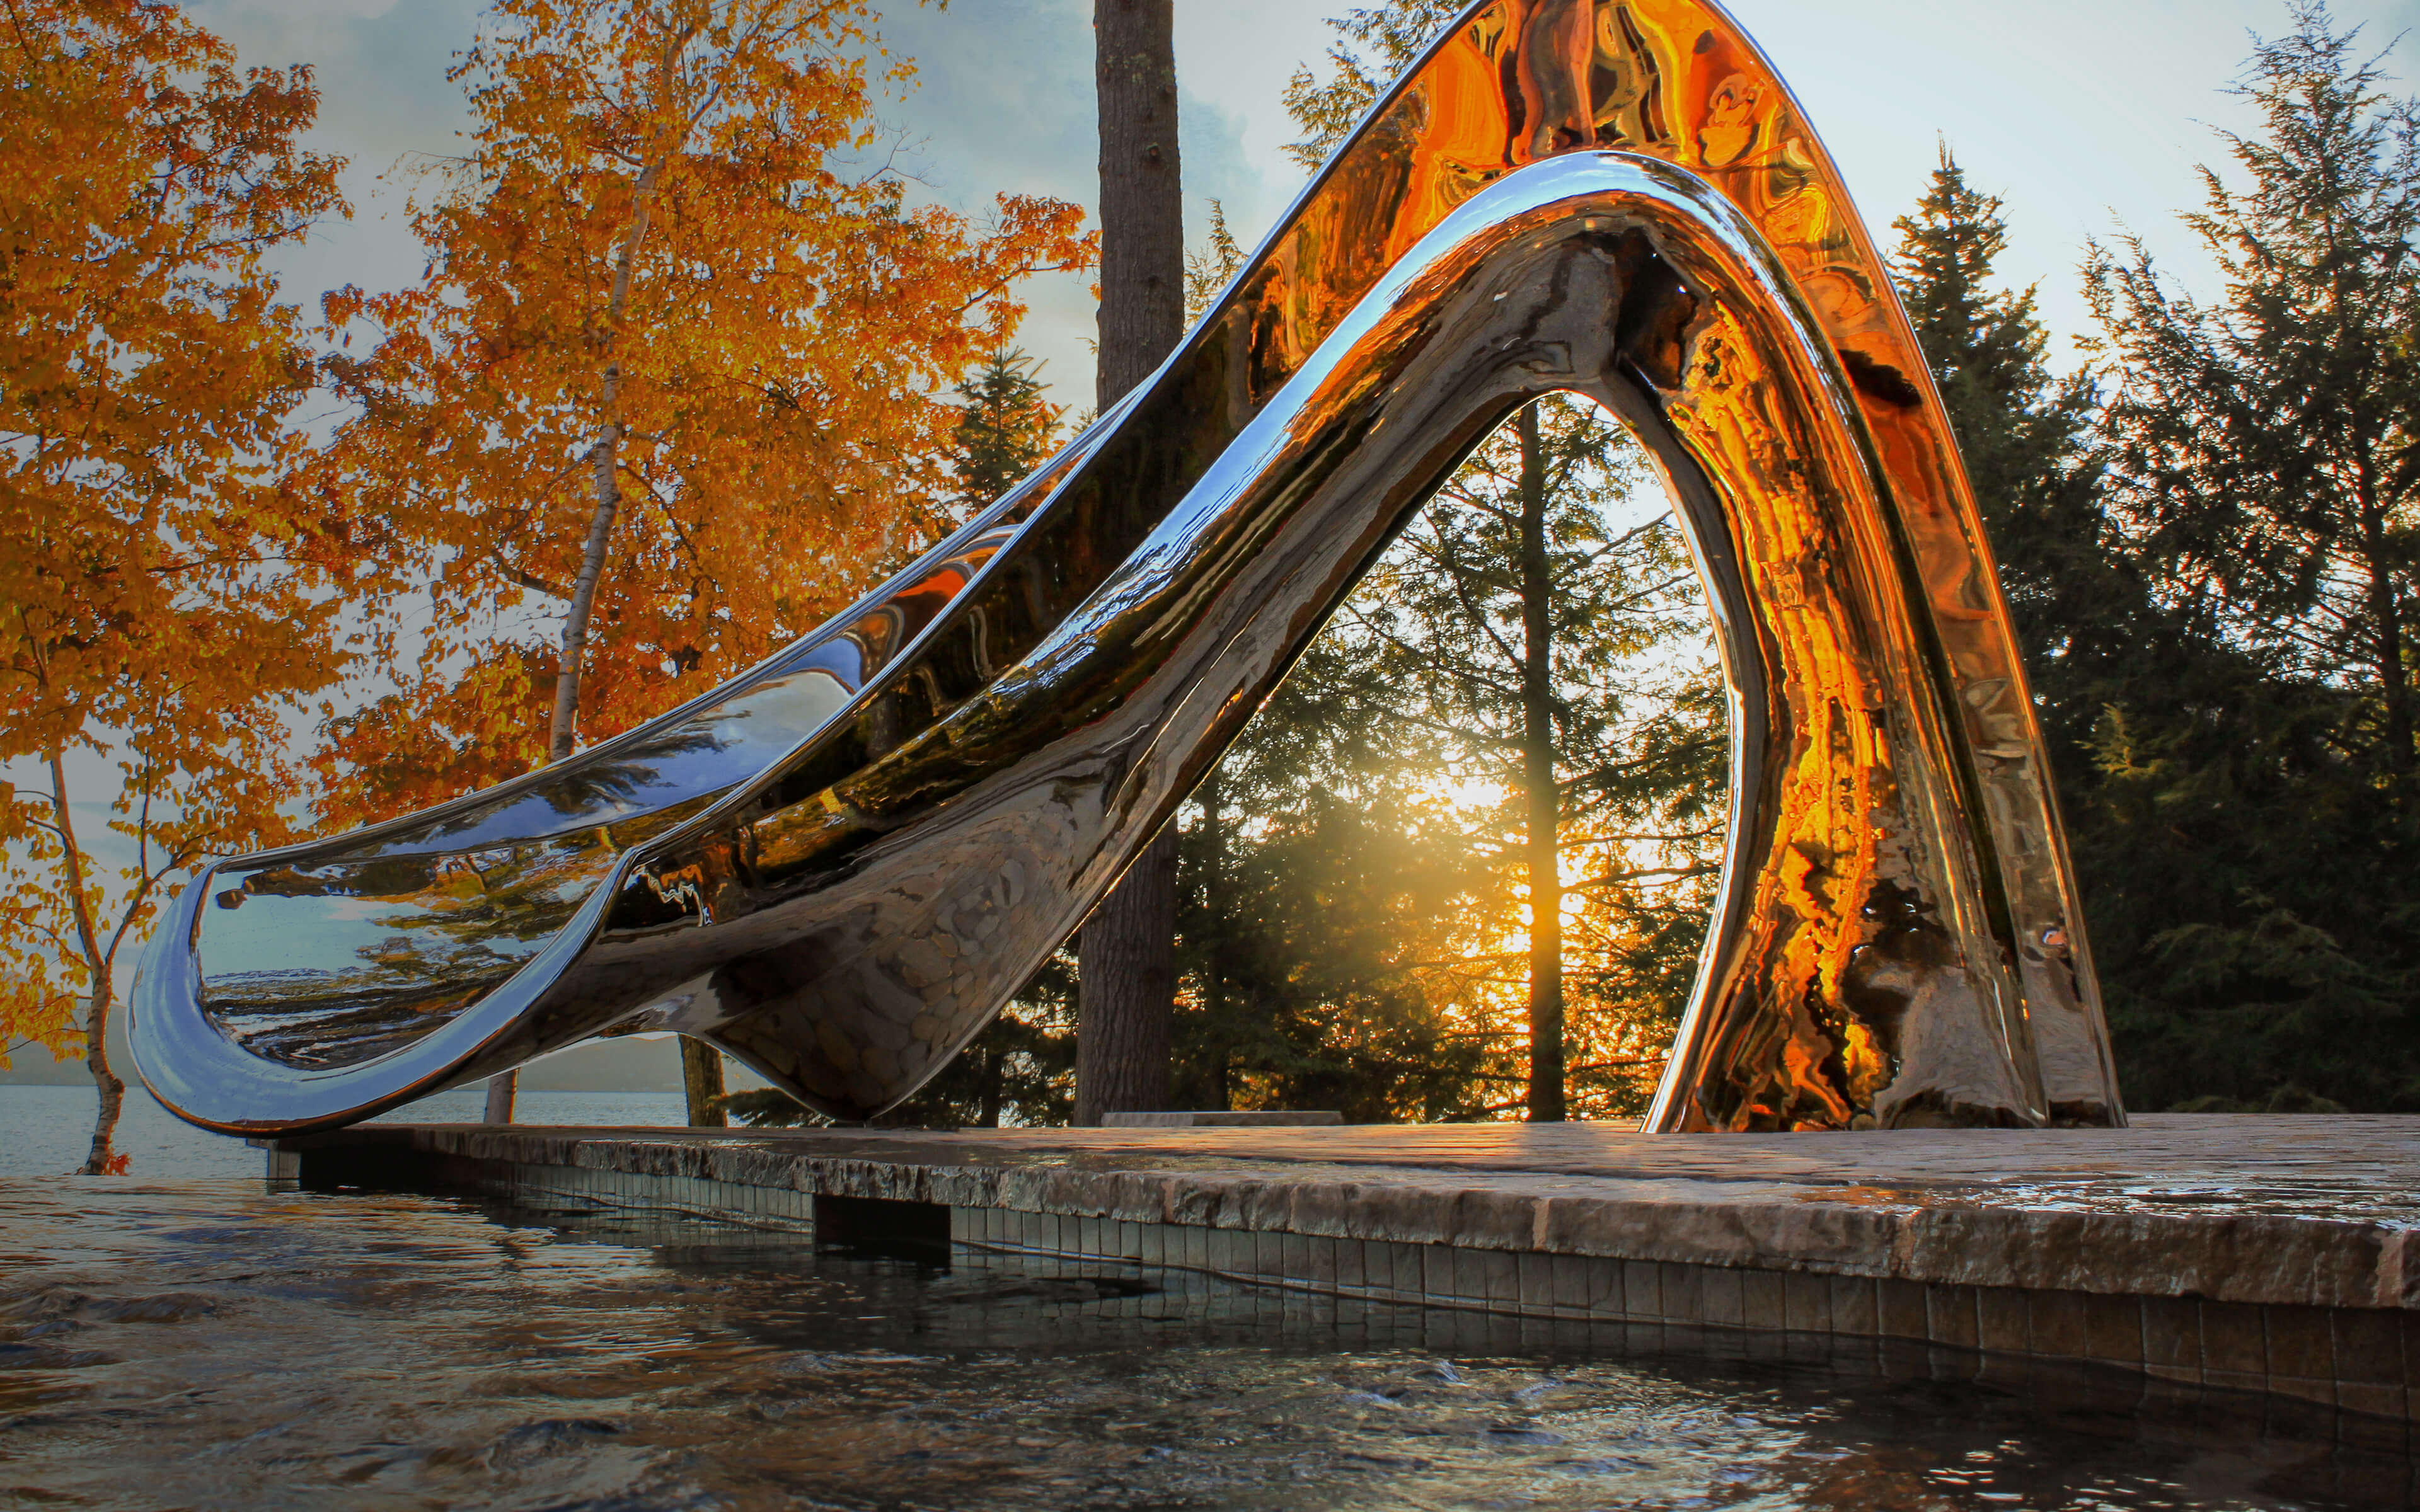 Sculptural pool slide in mirror polished metal next to lake at sunset, in collaboration with water shape designer